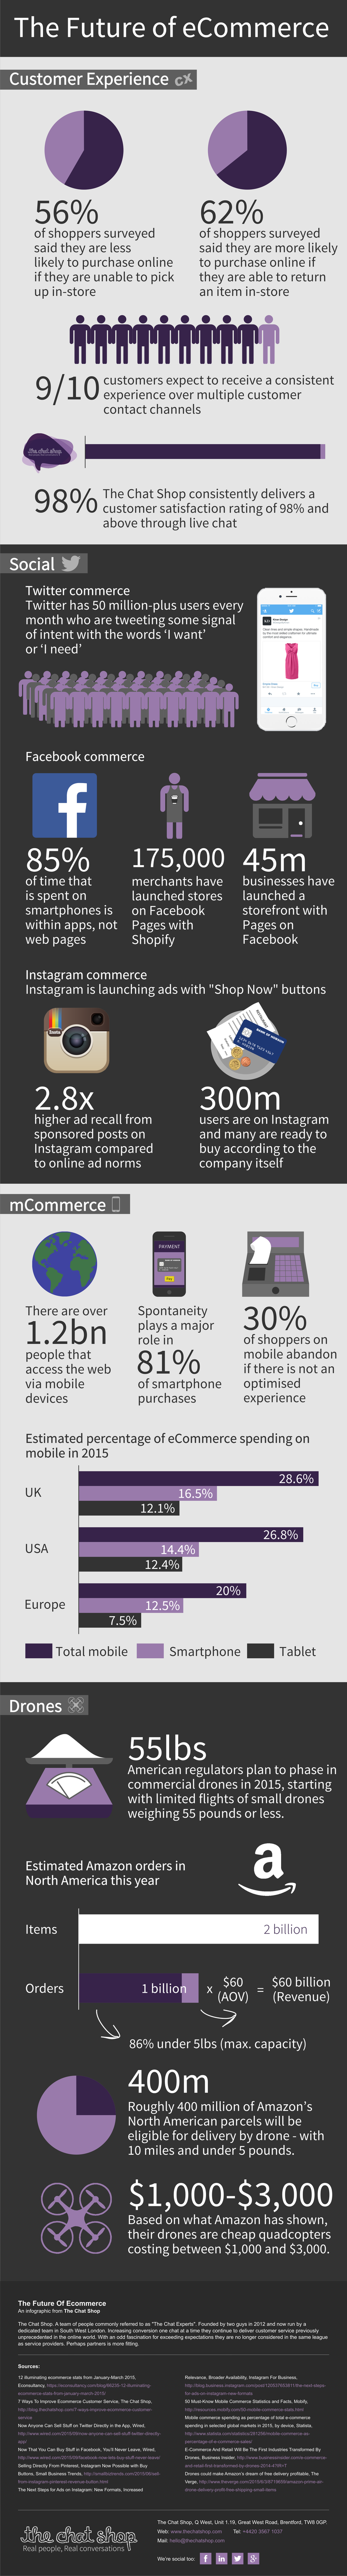 the_future_of_ecommerce_infographic_v2.png